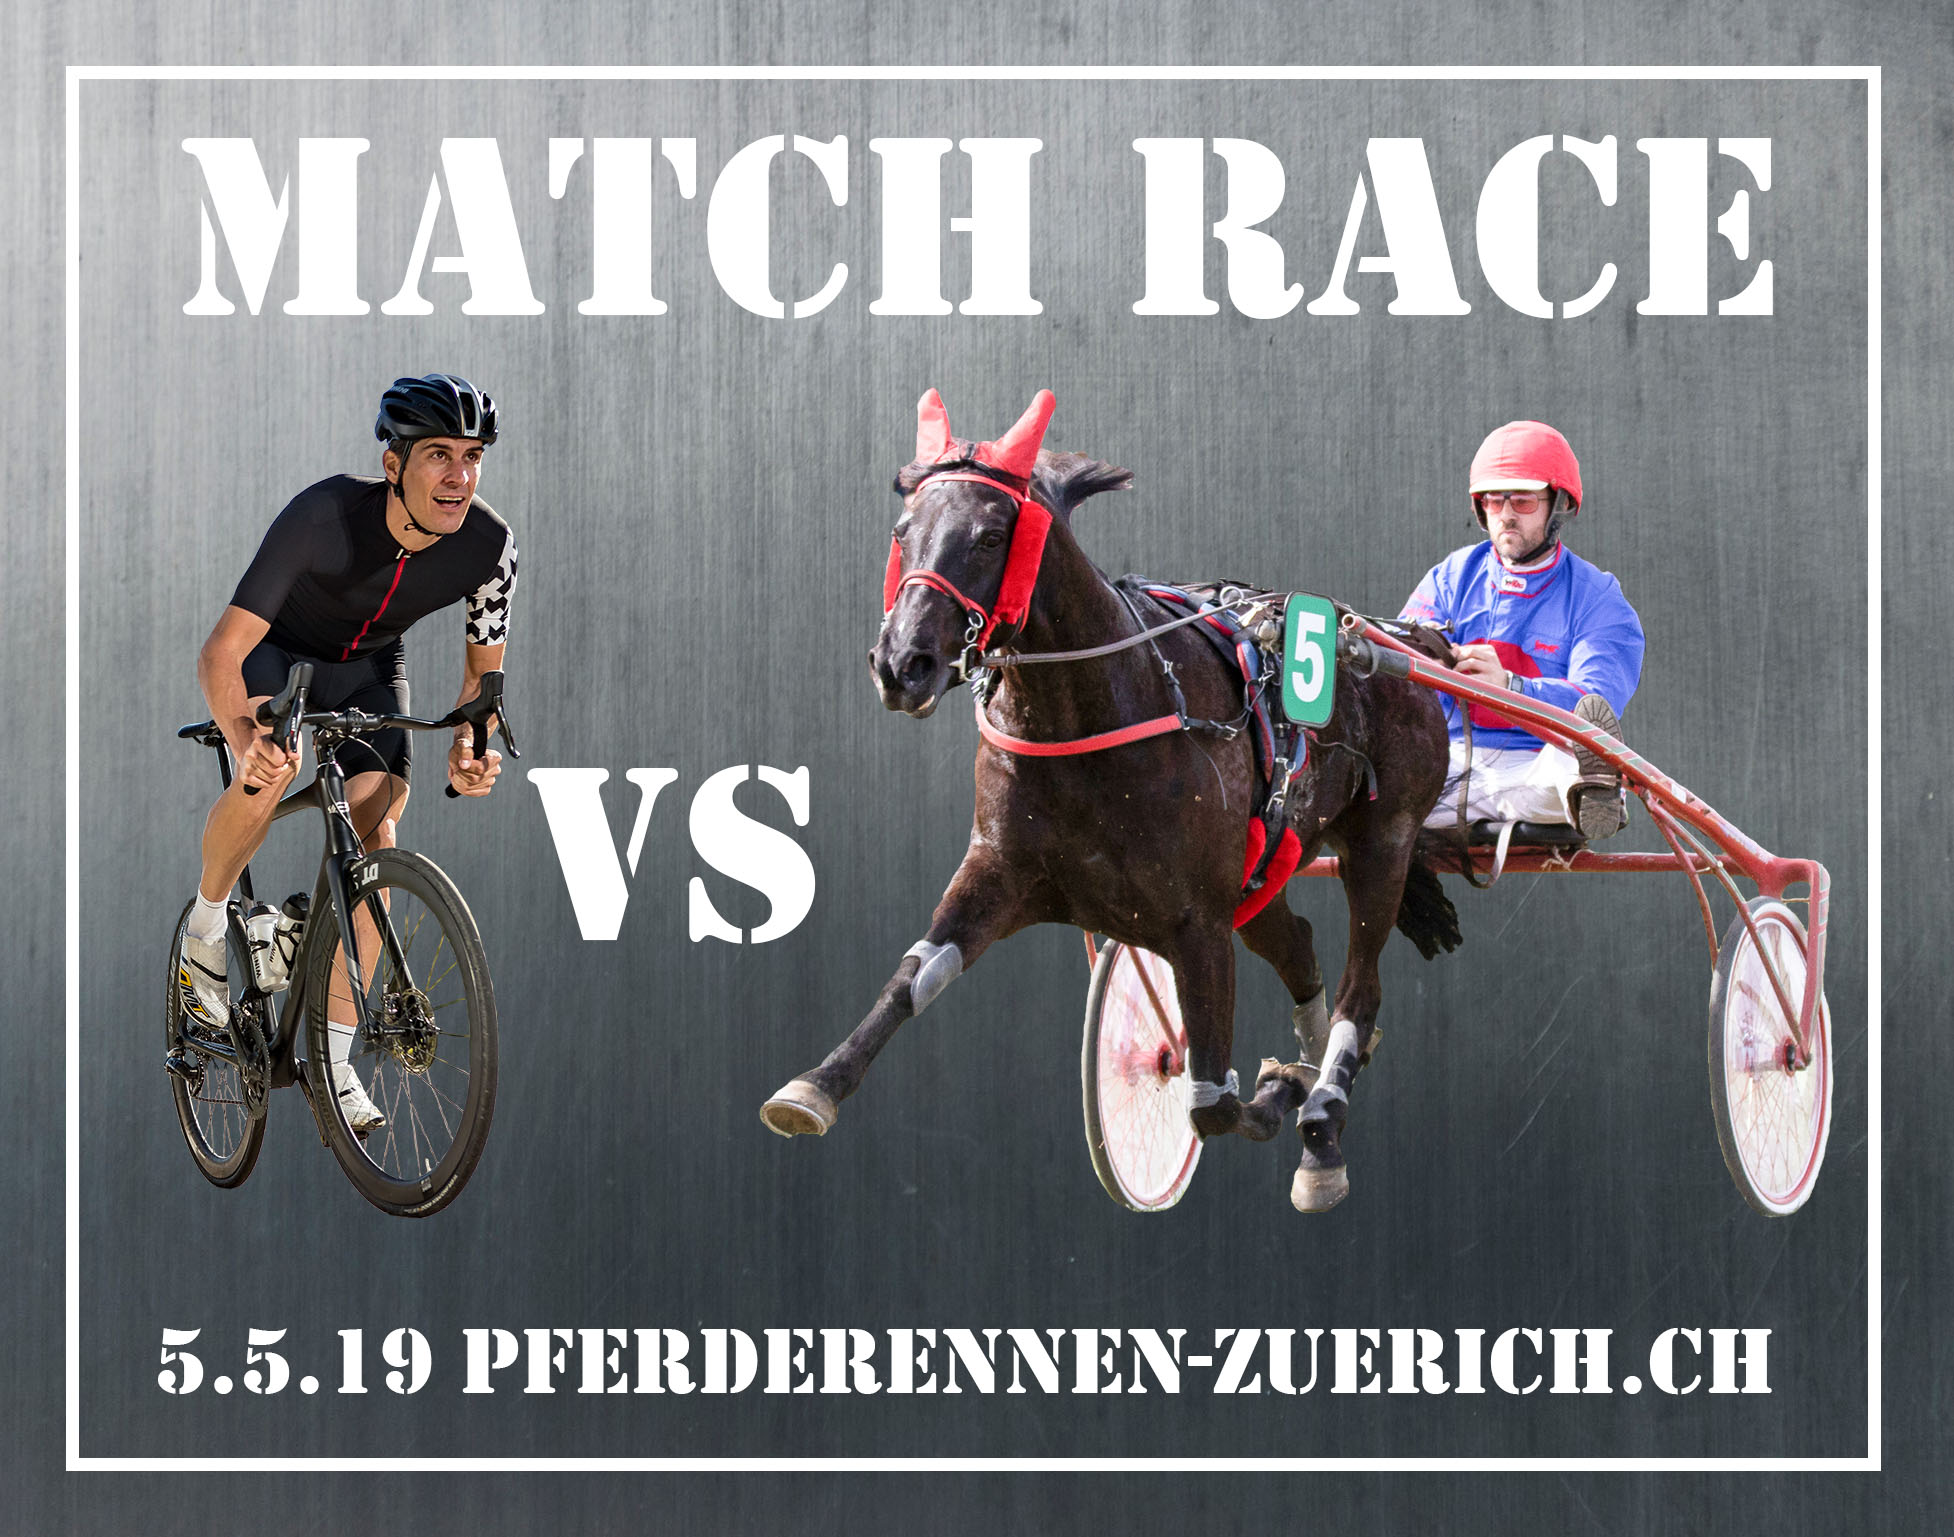 Match Race am Zürcher Renntag